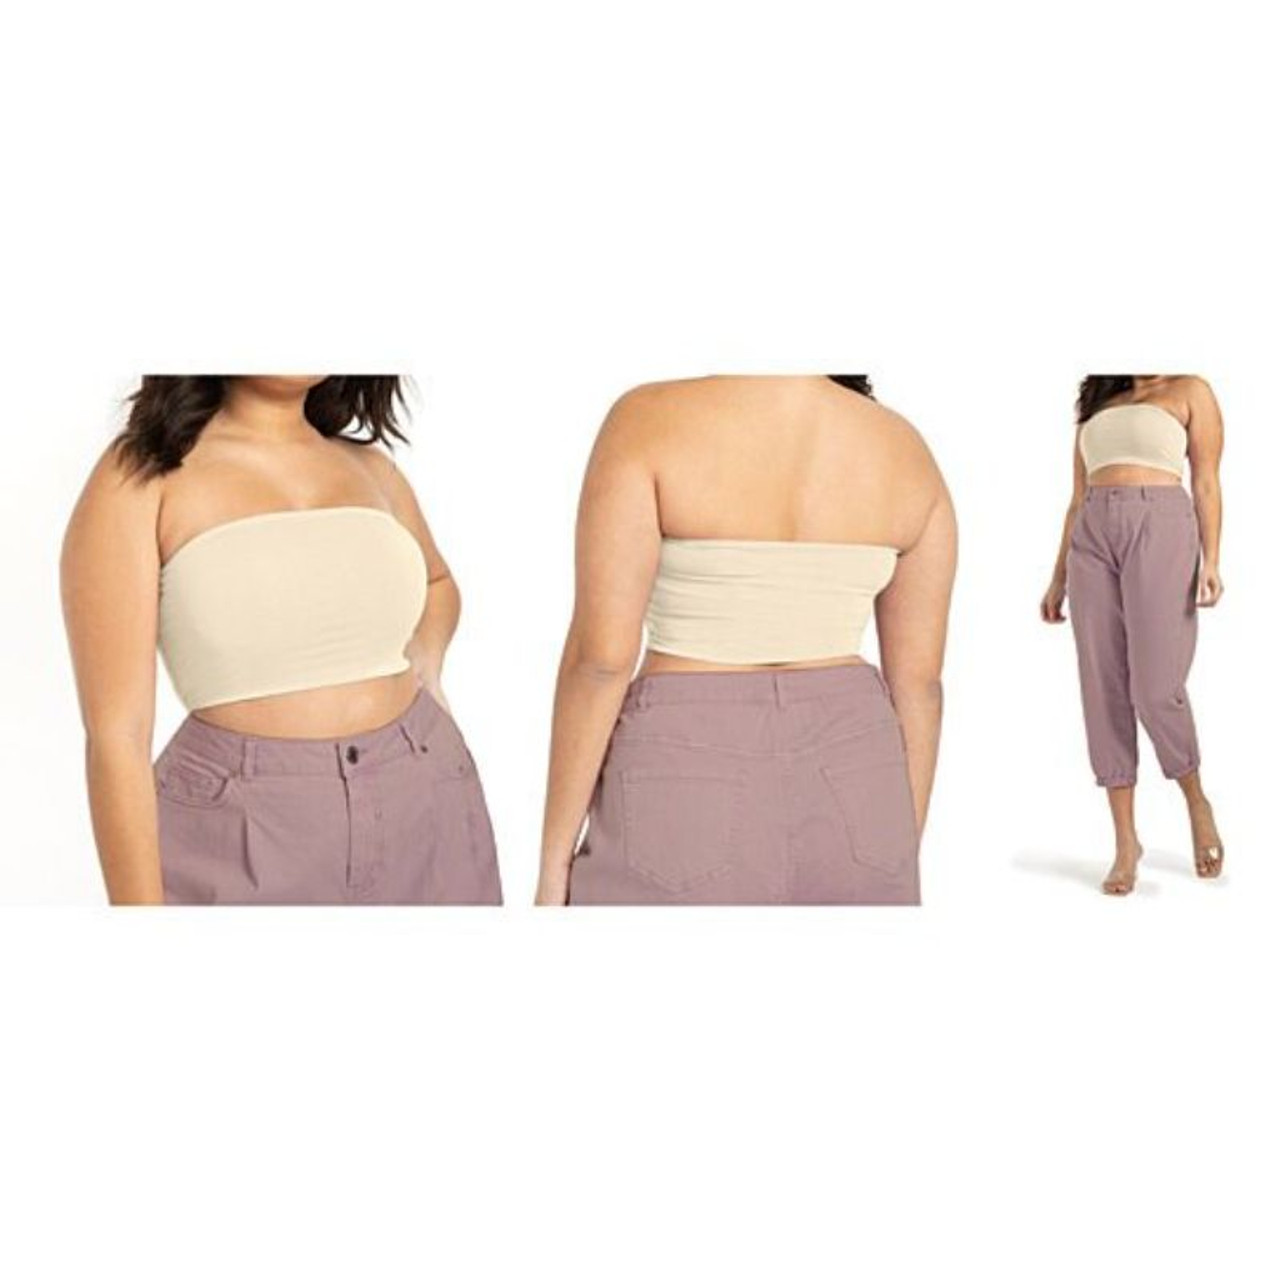 Women's Seamless Strapless Bandeau Crop Tube Top Bralettes - 3 Pack